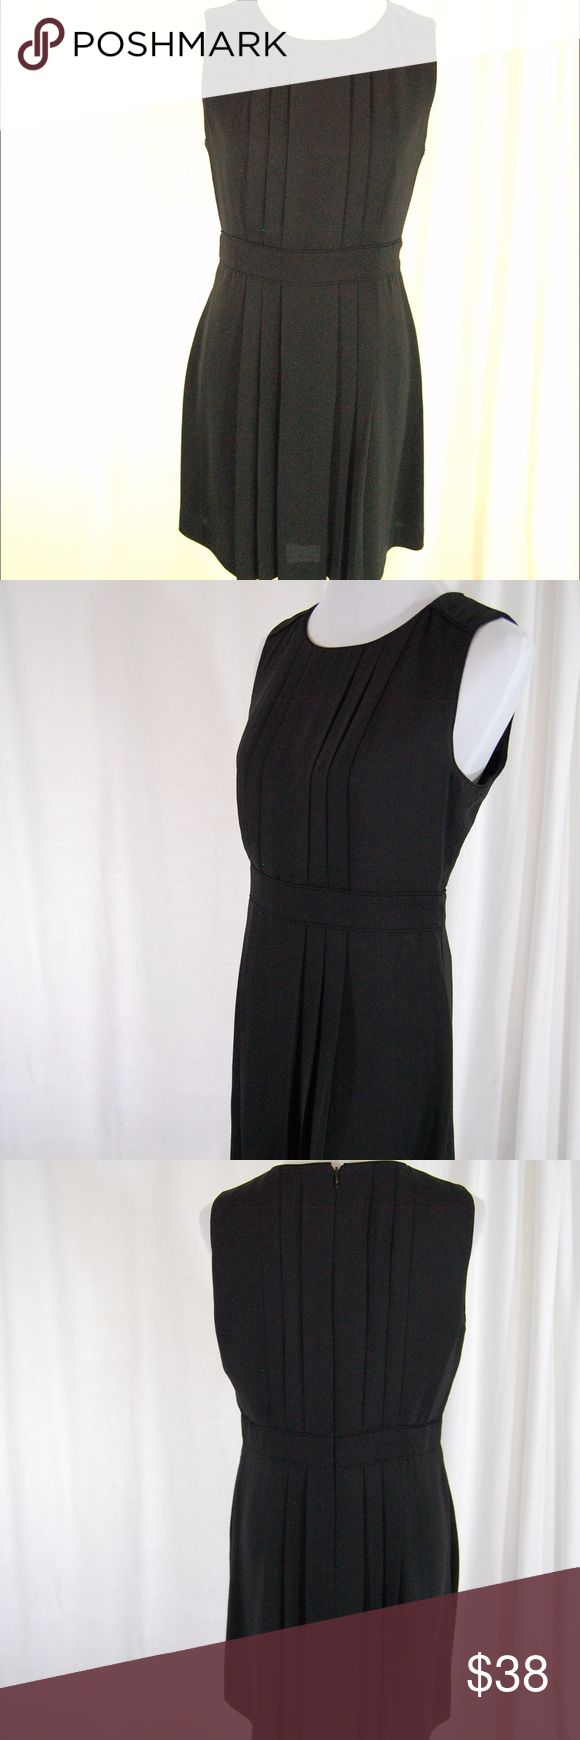 Banana Republic Round Neck Pleated Cocktail Dress Black rounded neck pleated bottom dress. Zip back closure with nice lining. Modest round neckline with a short above-the-knee hemline. Sexy, yet classy. Great for work cocktail events!   Great condition. Worn once. Banana Republic Dresses Mini